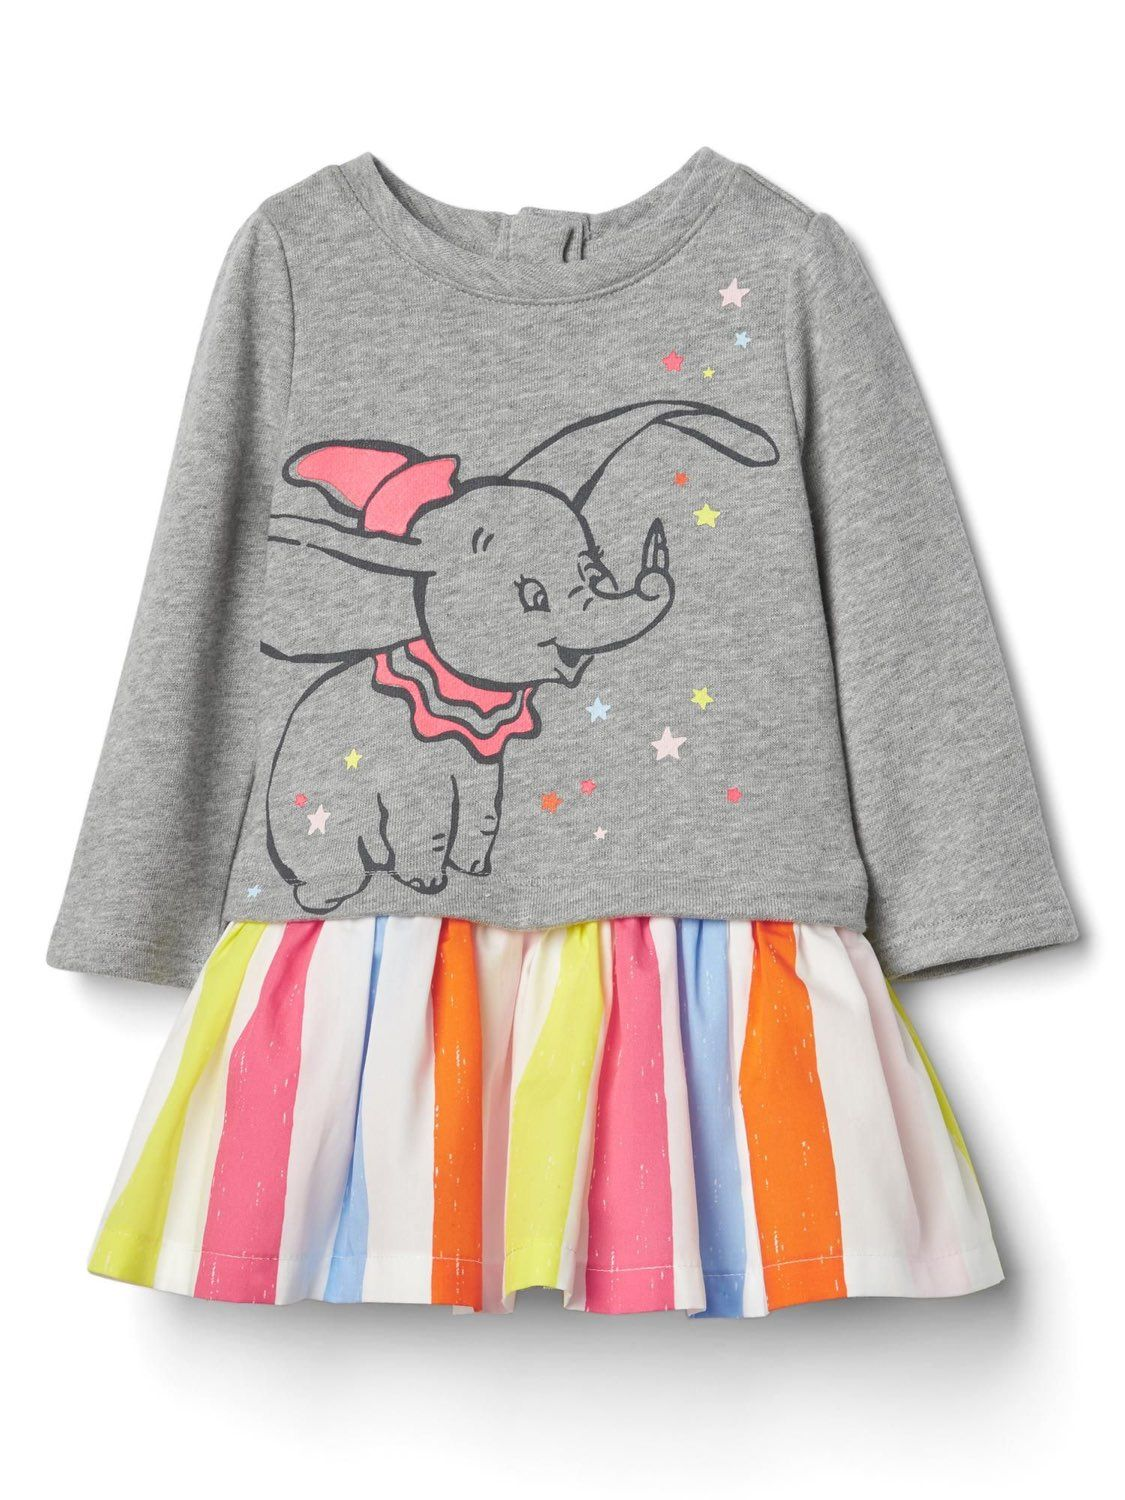 58c270baf Baby Gap Disney Dumbo Grey Multi-Color Tutu Dress 12-18 Months ...